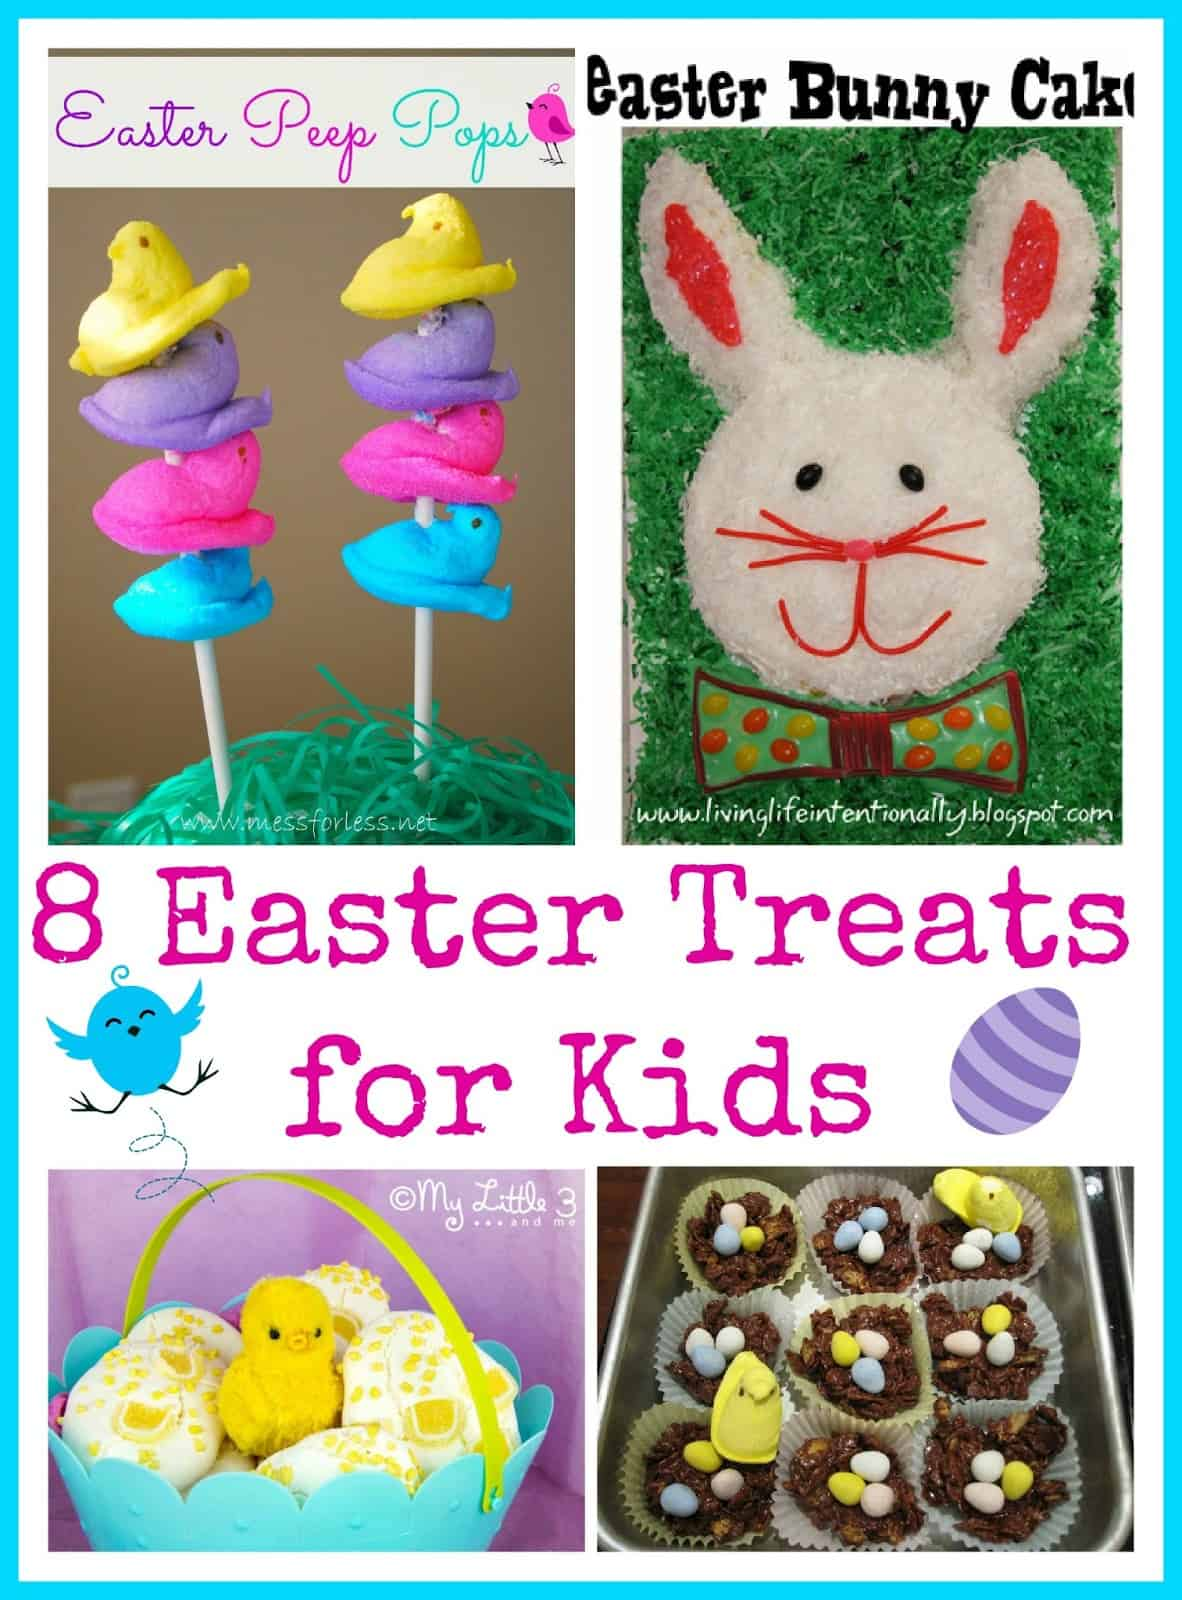 8 Easter Treats For Kids